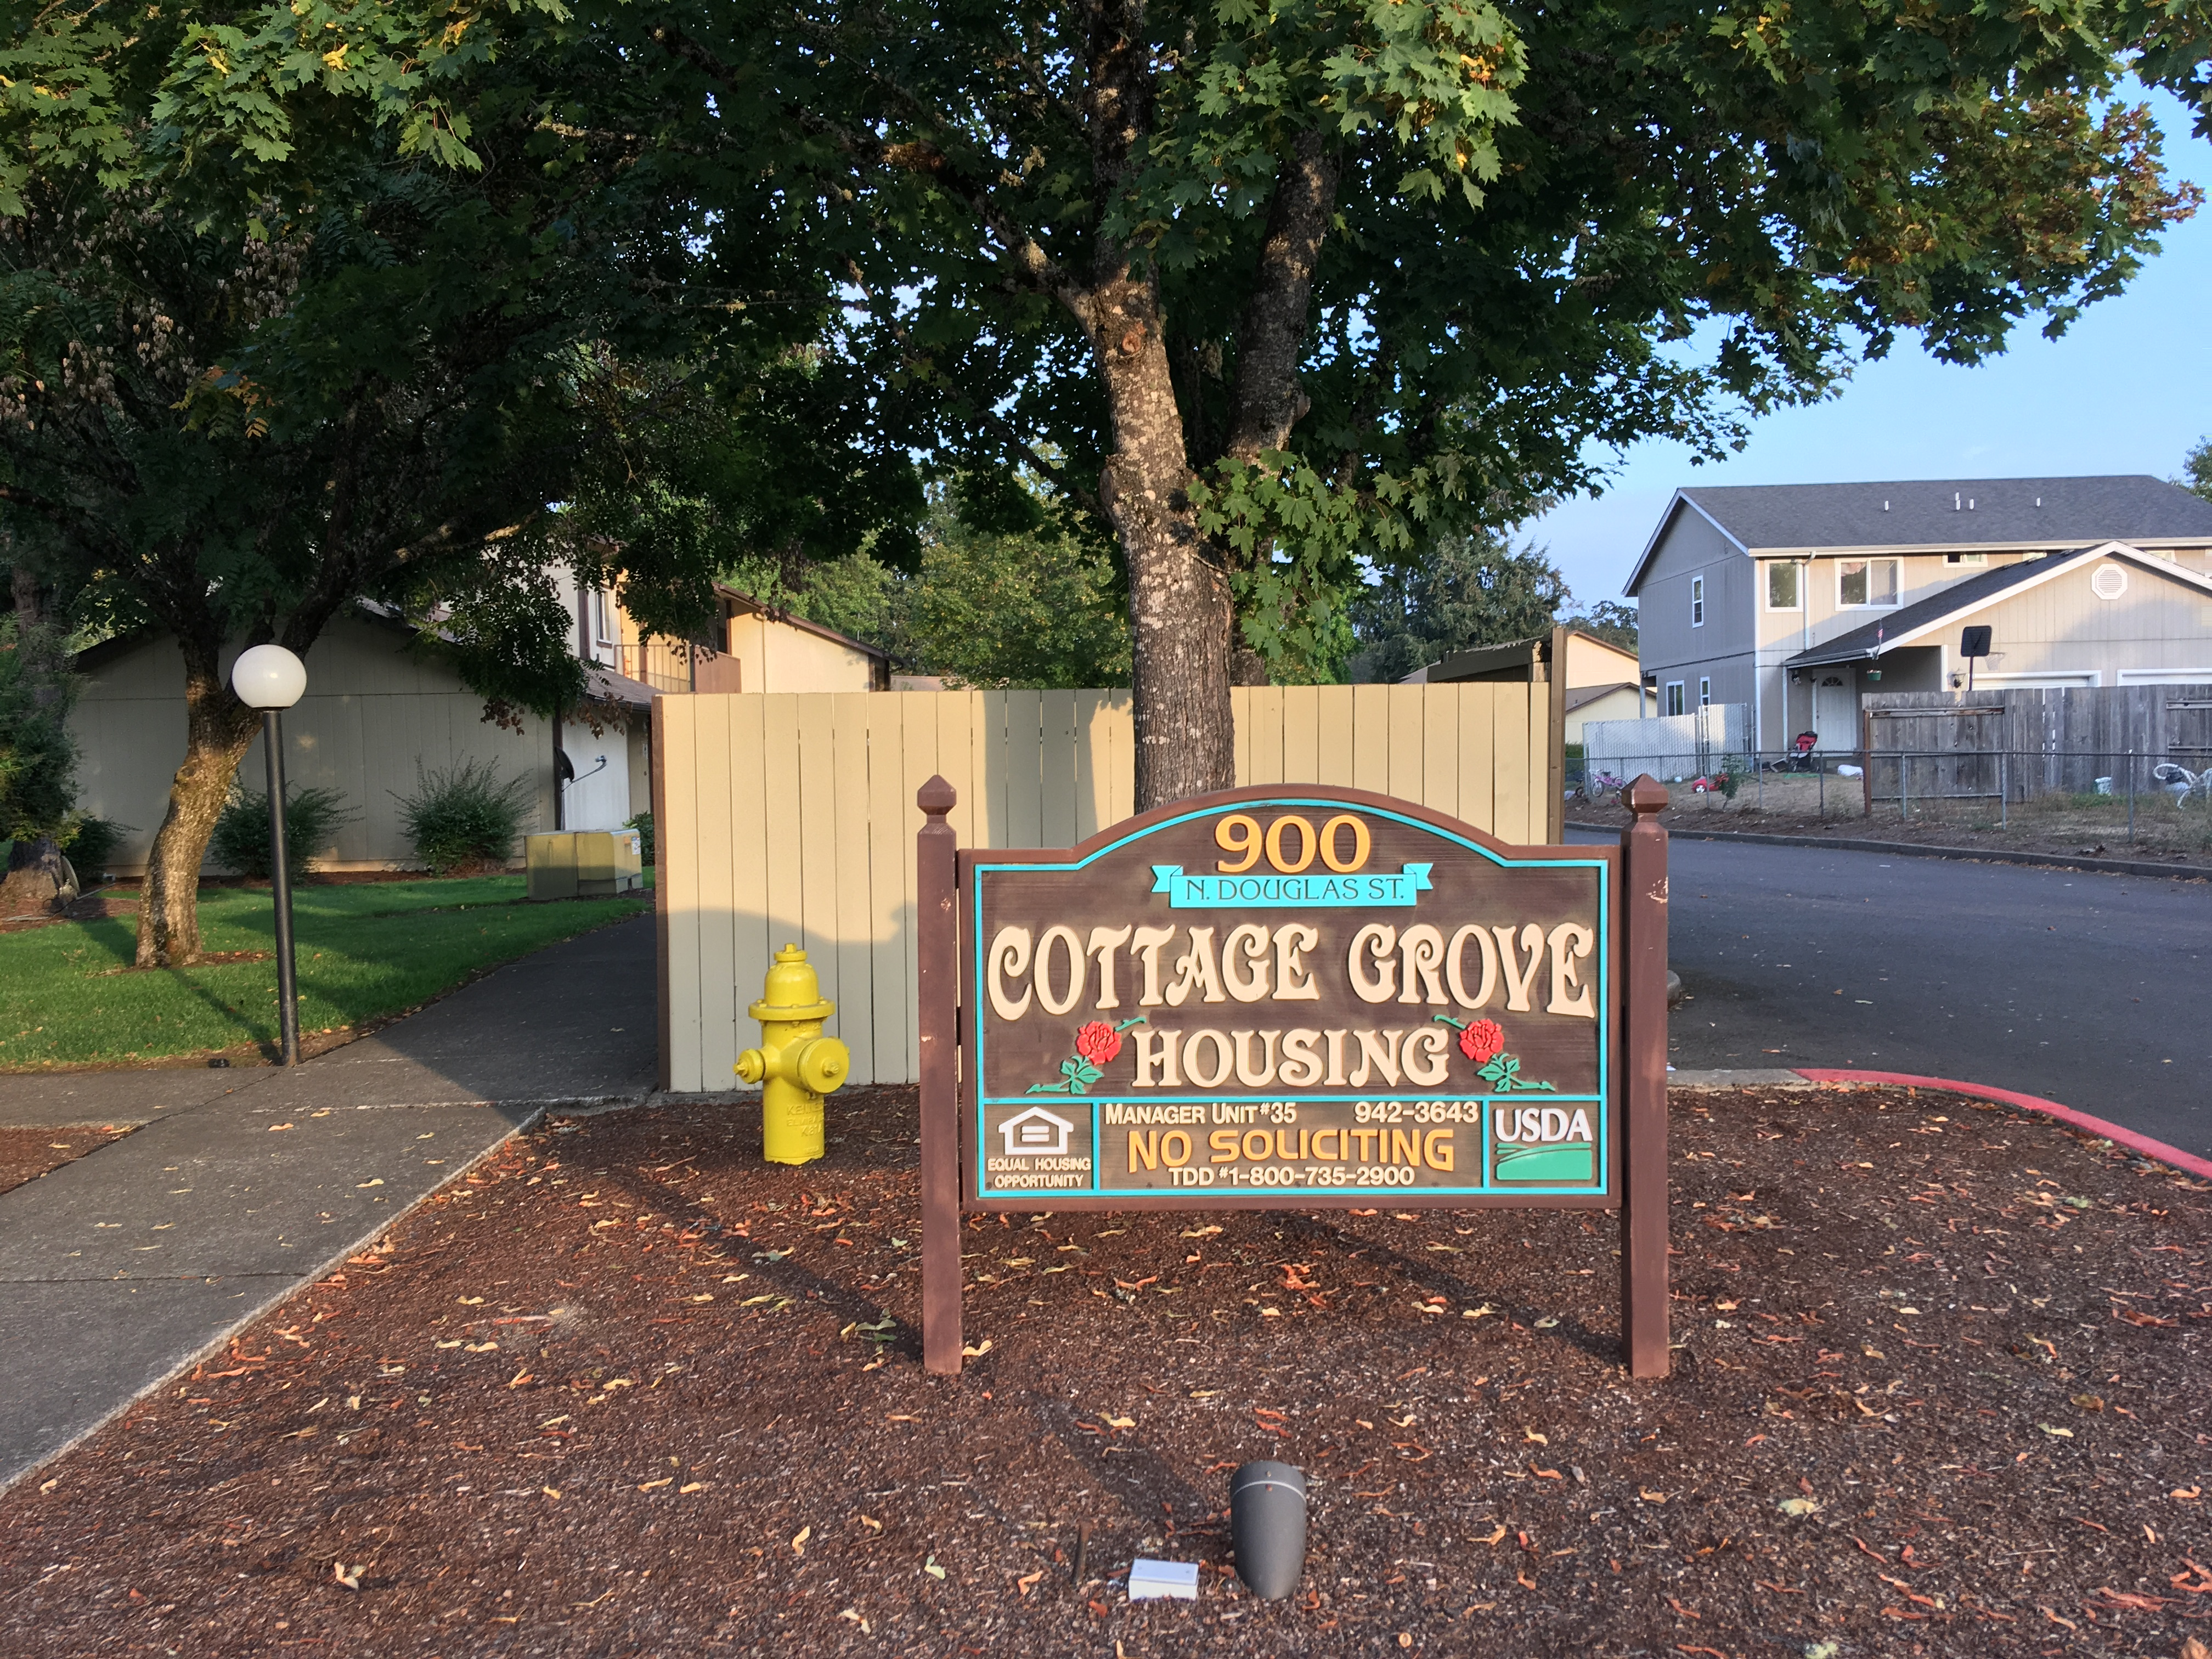 Cottage Grove Housing